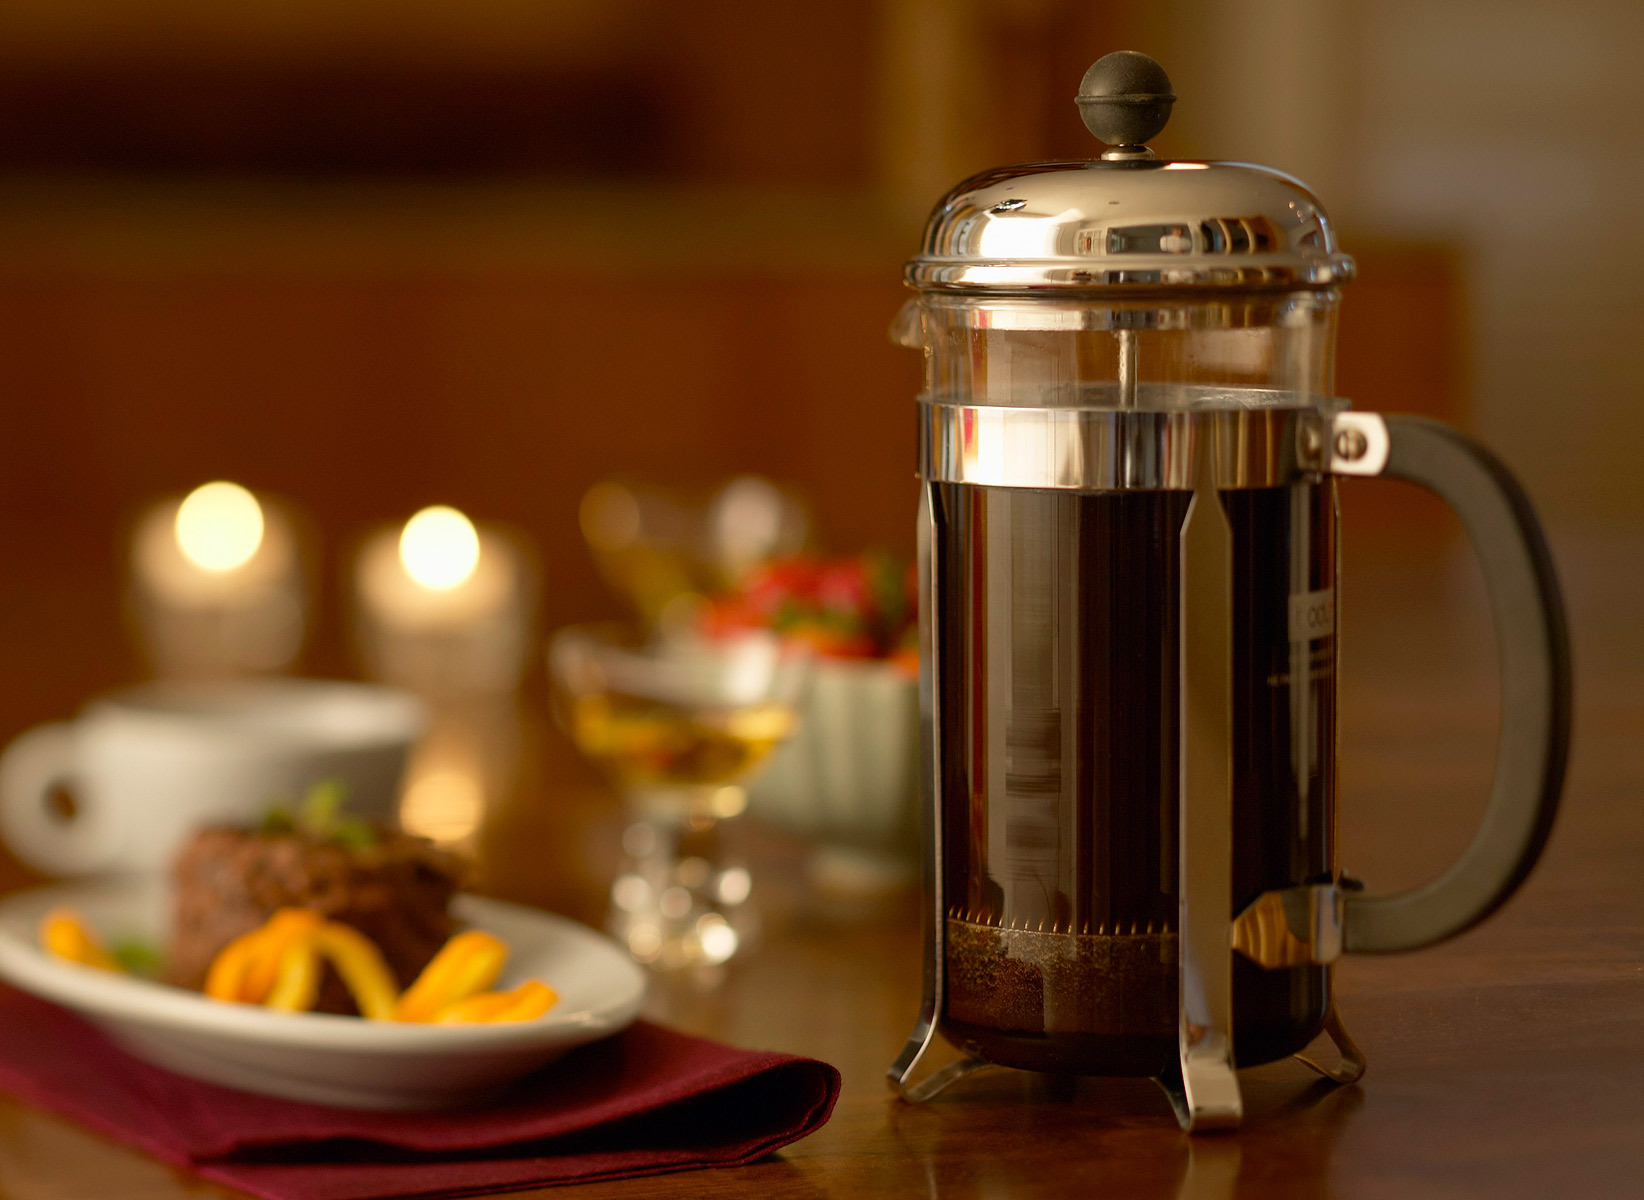 A French press saves space in a small kitchen.